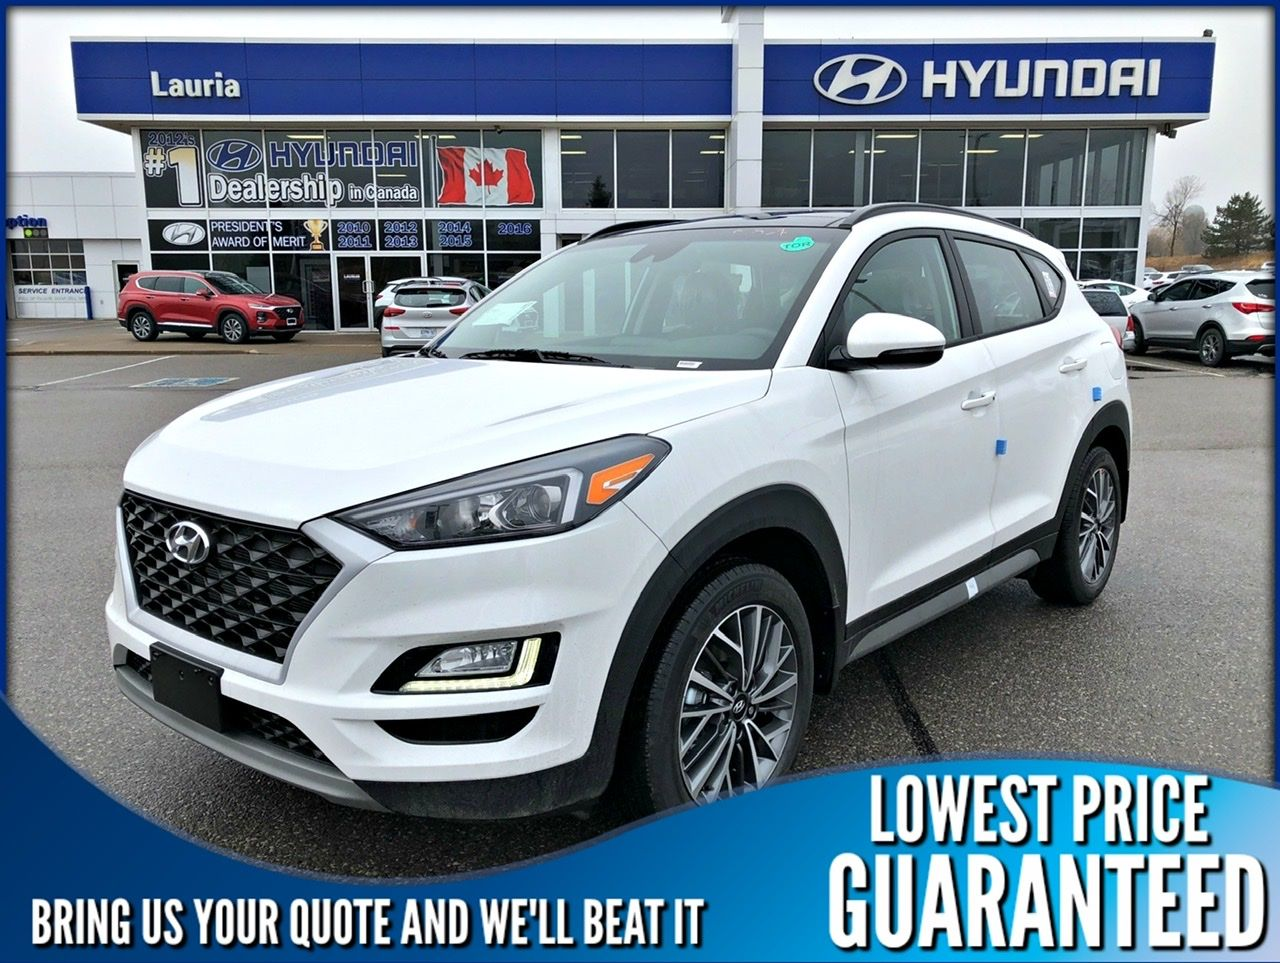 New 2020 Hyundai Tucson 2.0L AWD Luxury